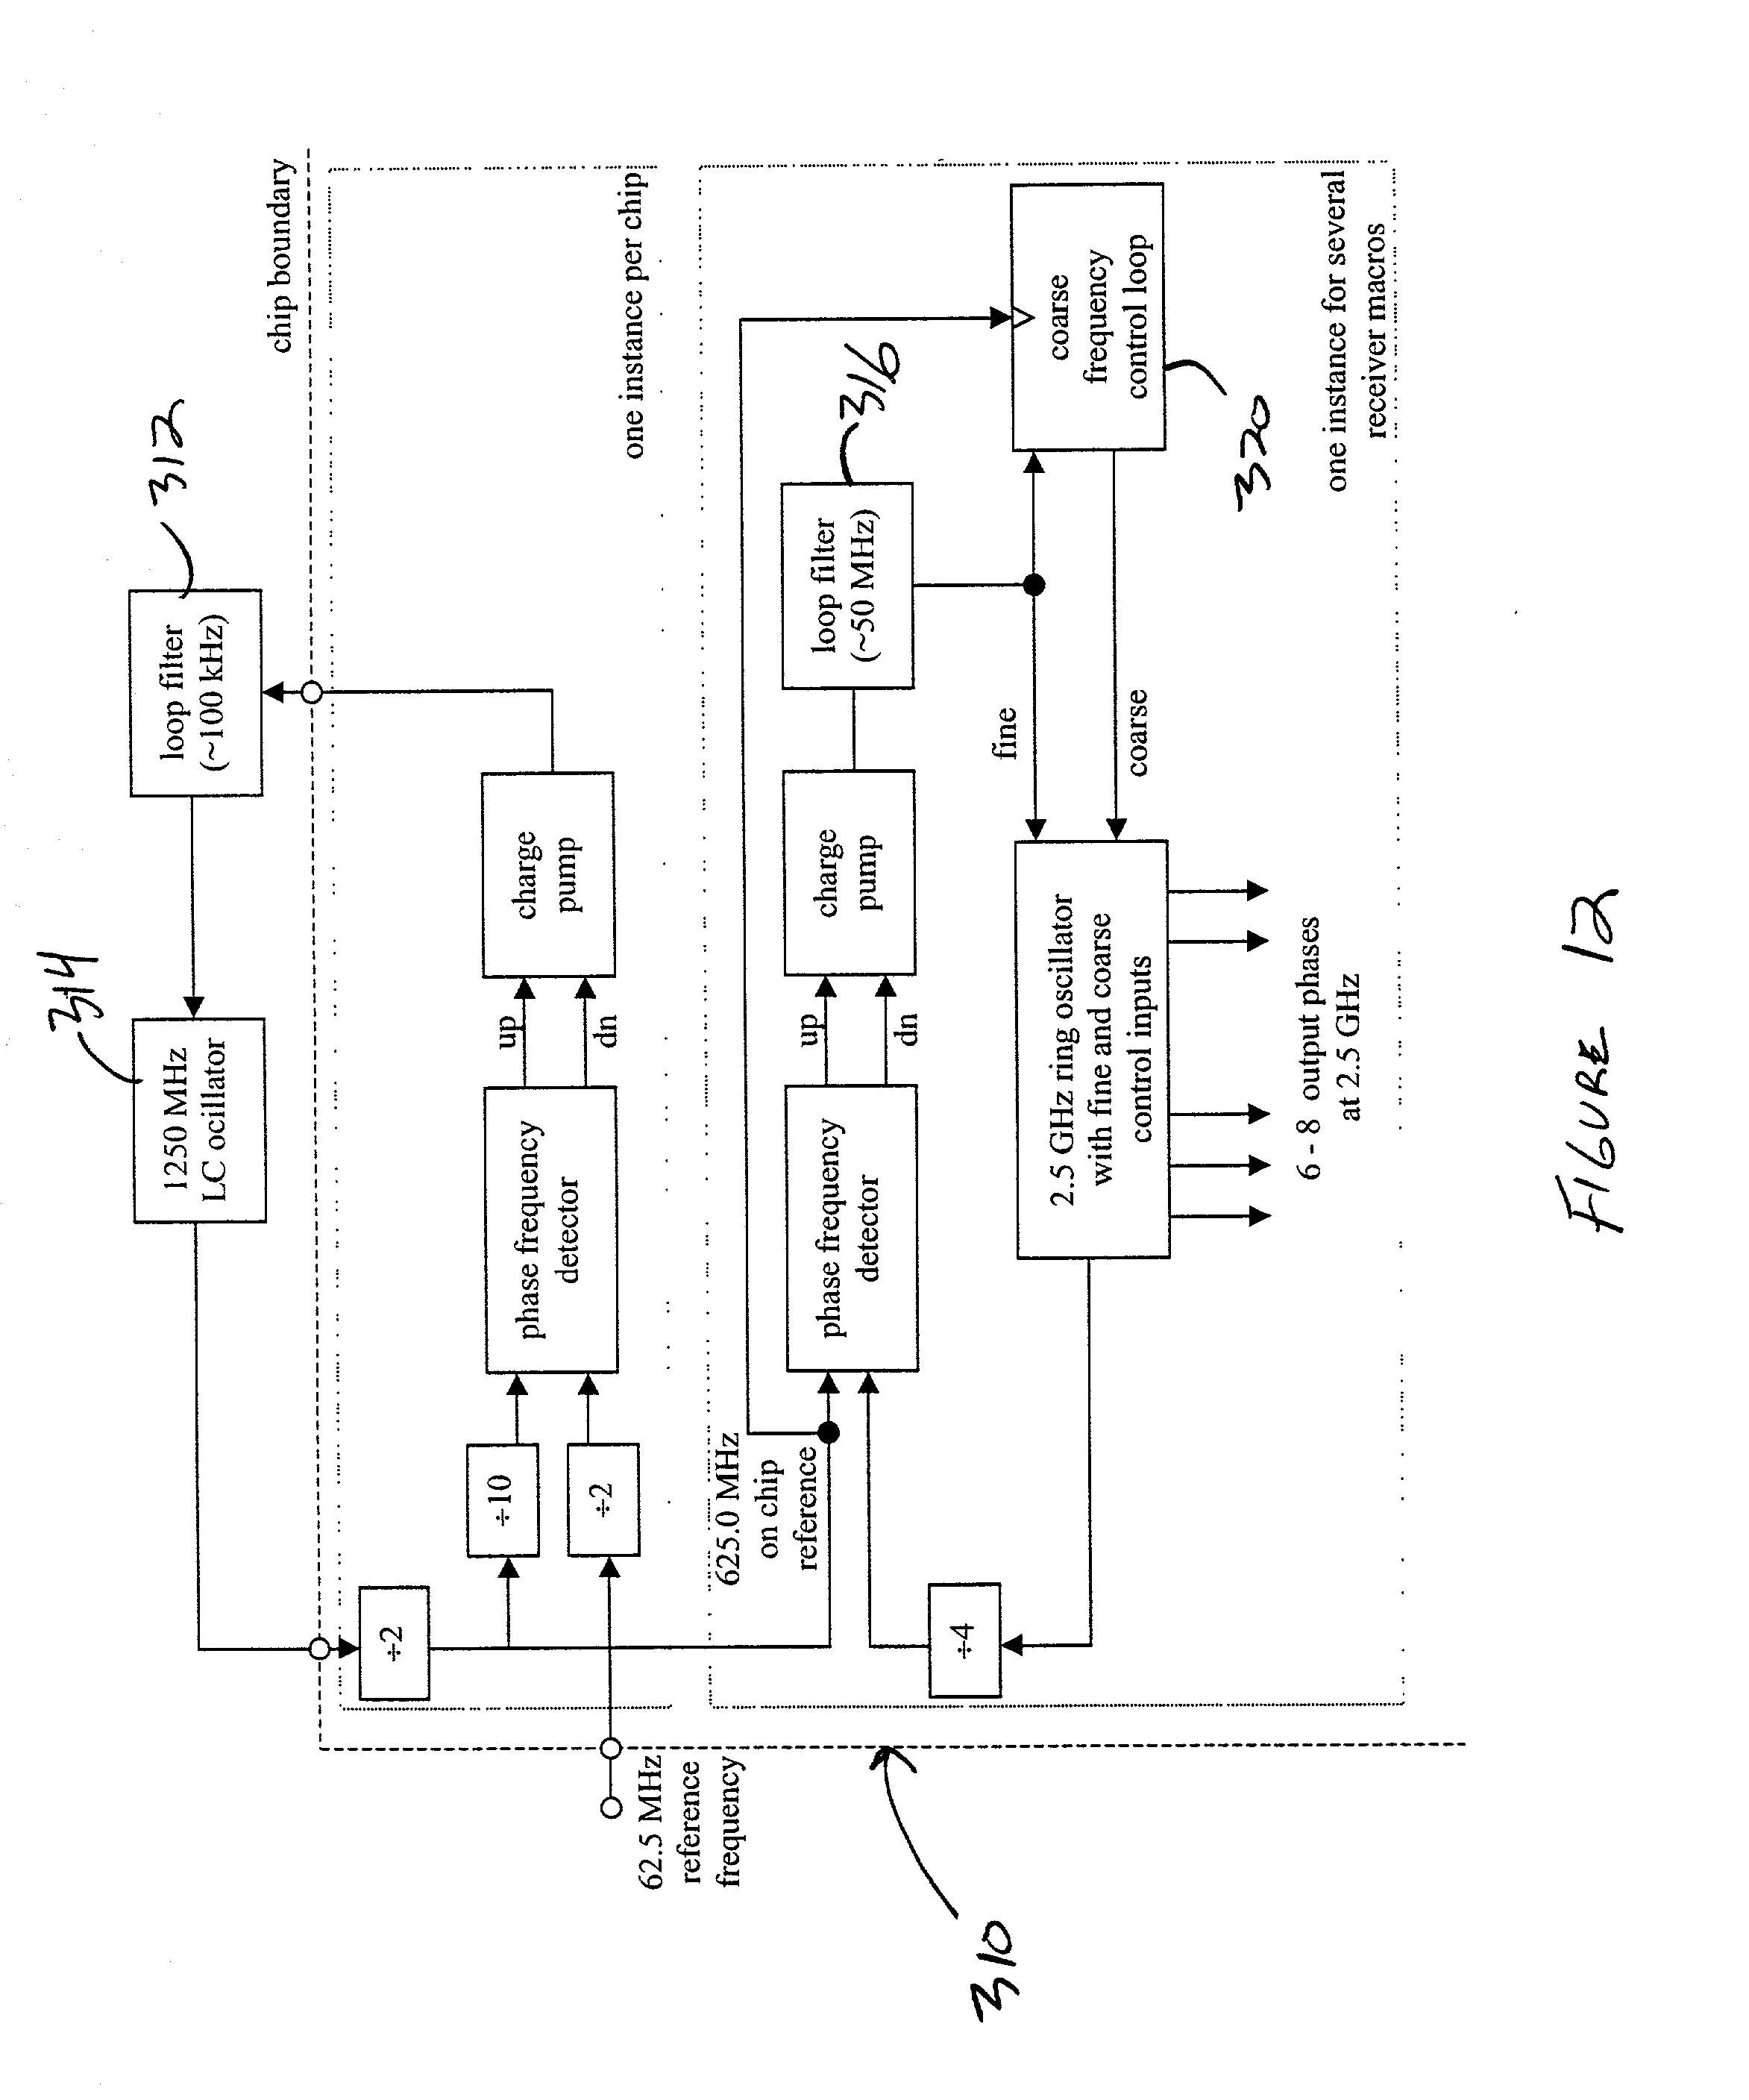 Patent Us20020136343 Analog Unidirectional Serial Link Settling Lowpass Filter Schematic Diagram Circuit Wiring Diagrams Drawing